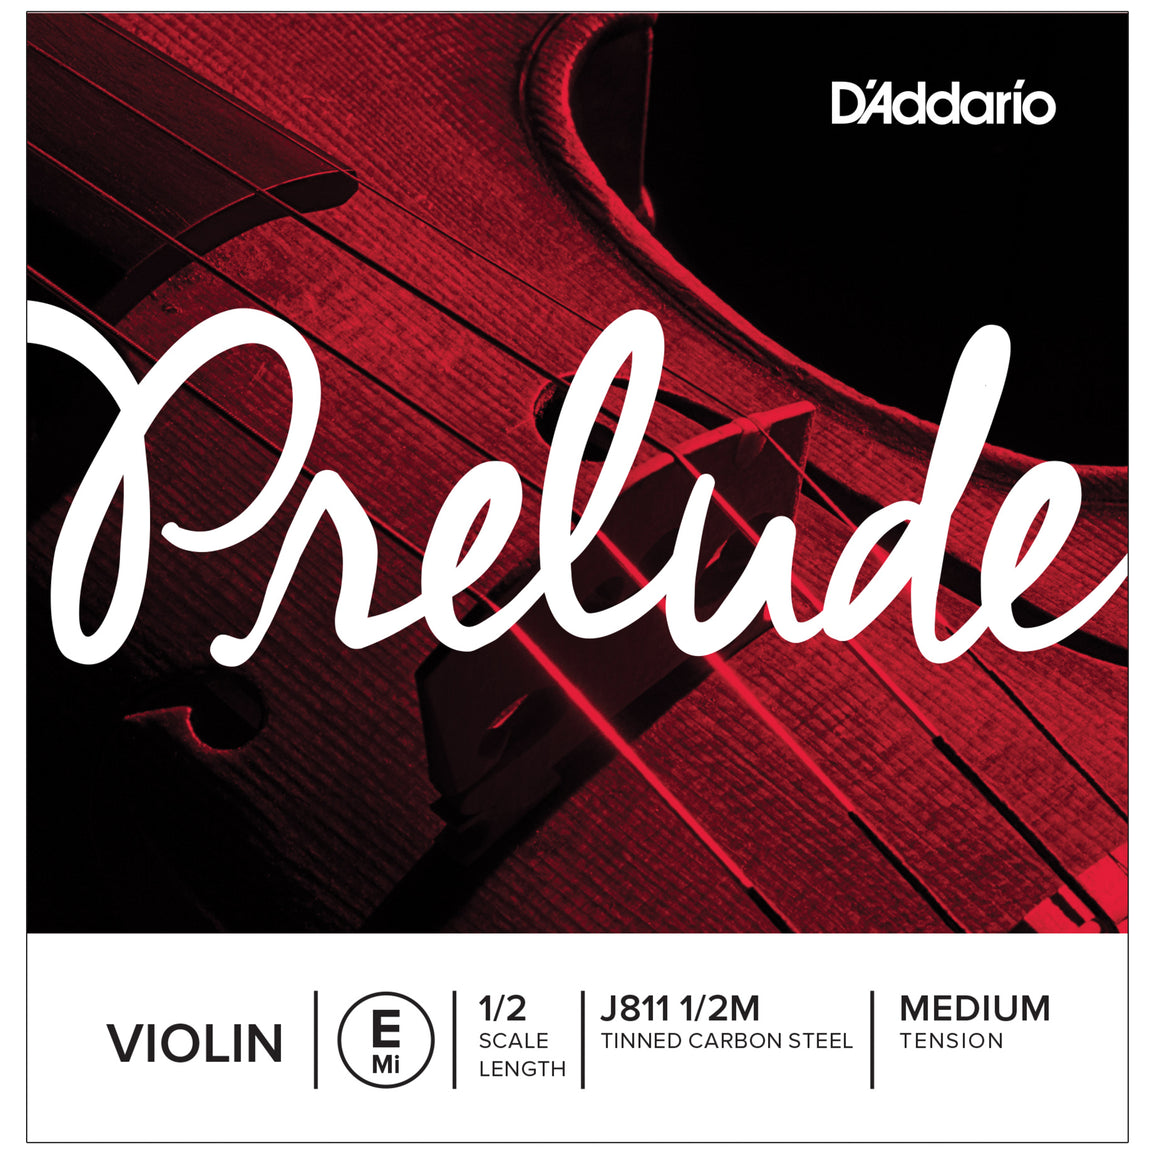 D'Addario Prelude 1/2 E Violin Single String Medium J811